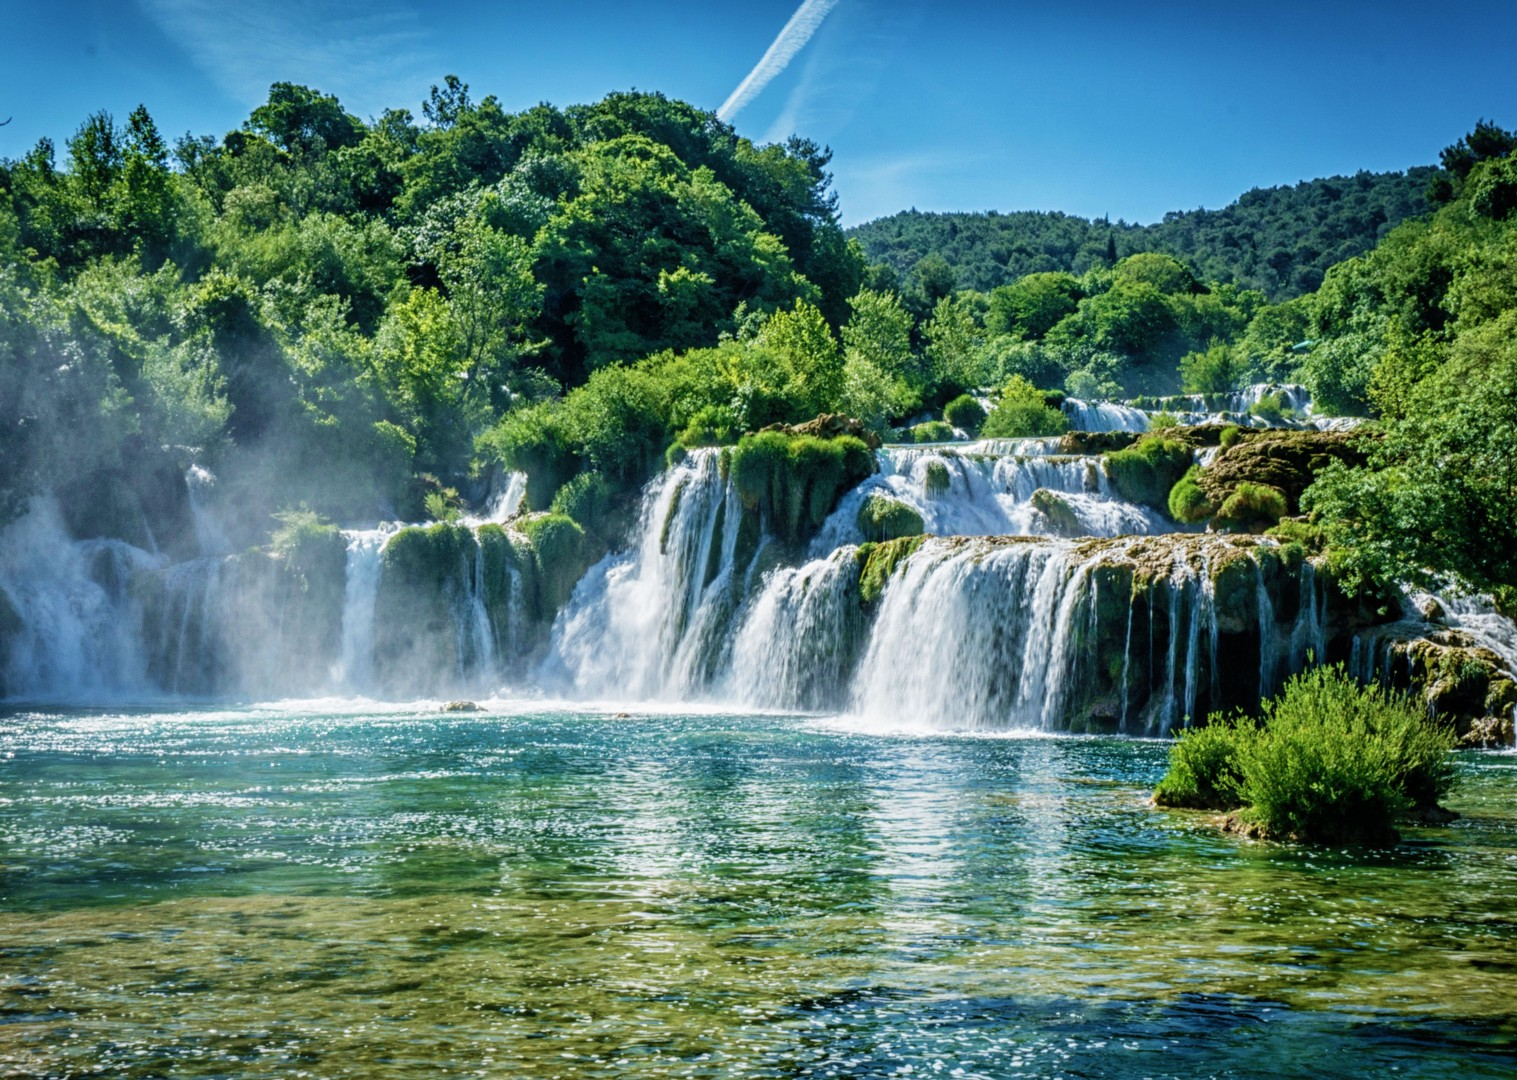 waterfalls-croatia-national-park-cycling-holiday.jpg - Croatia - Dalmatian National Parks and Islands - Bike and Boat Holiday - Leisure Cycling